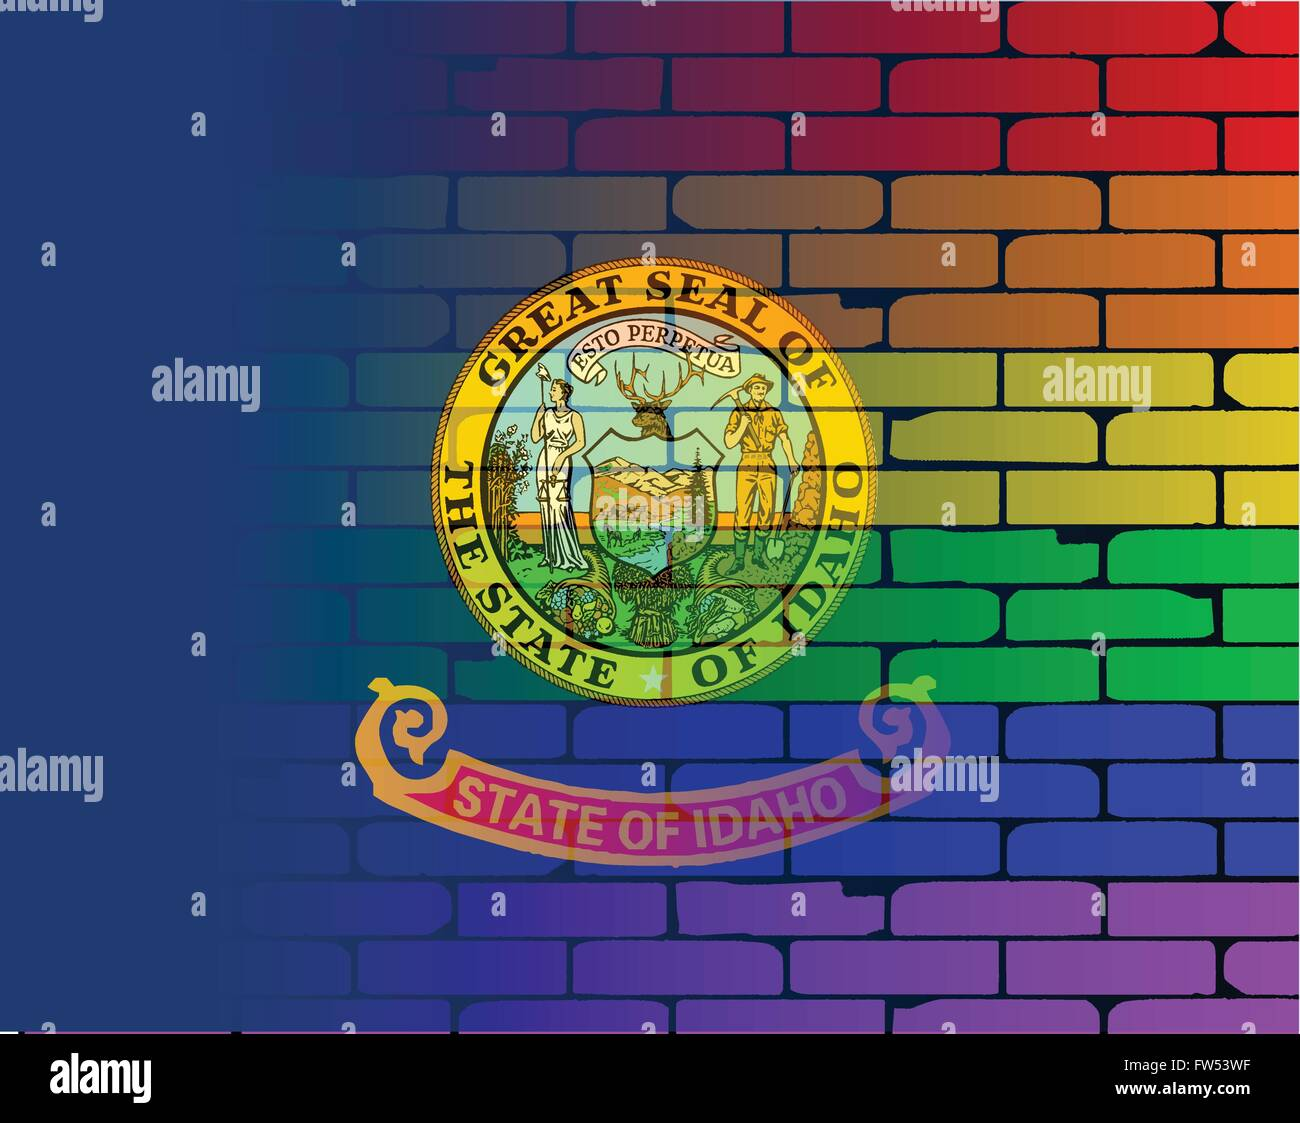 A well worn wall painted with a LGBT rainbow with the Idaho state flag - Stock Vector